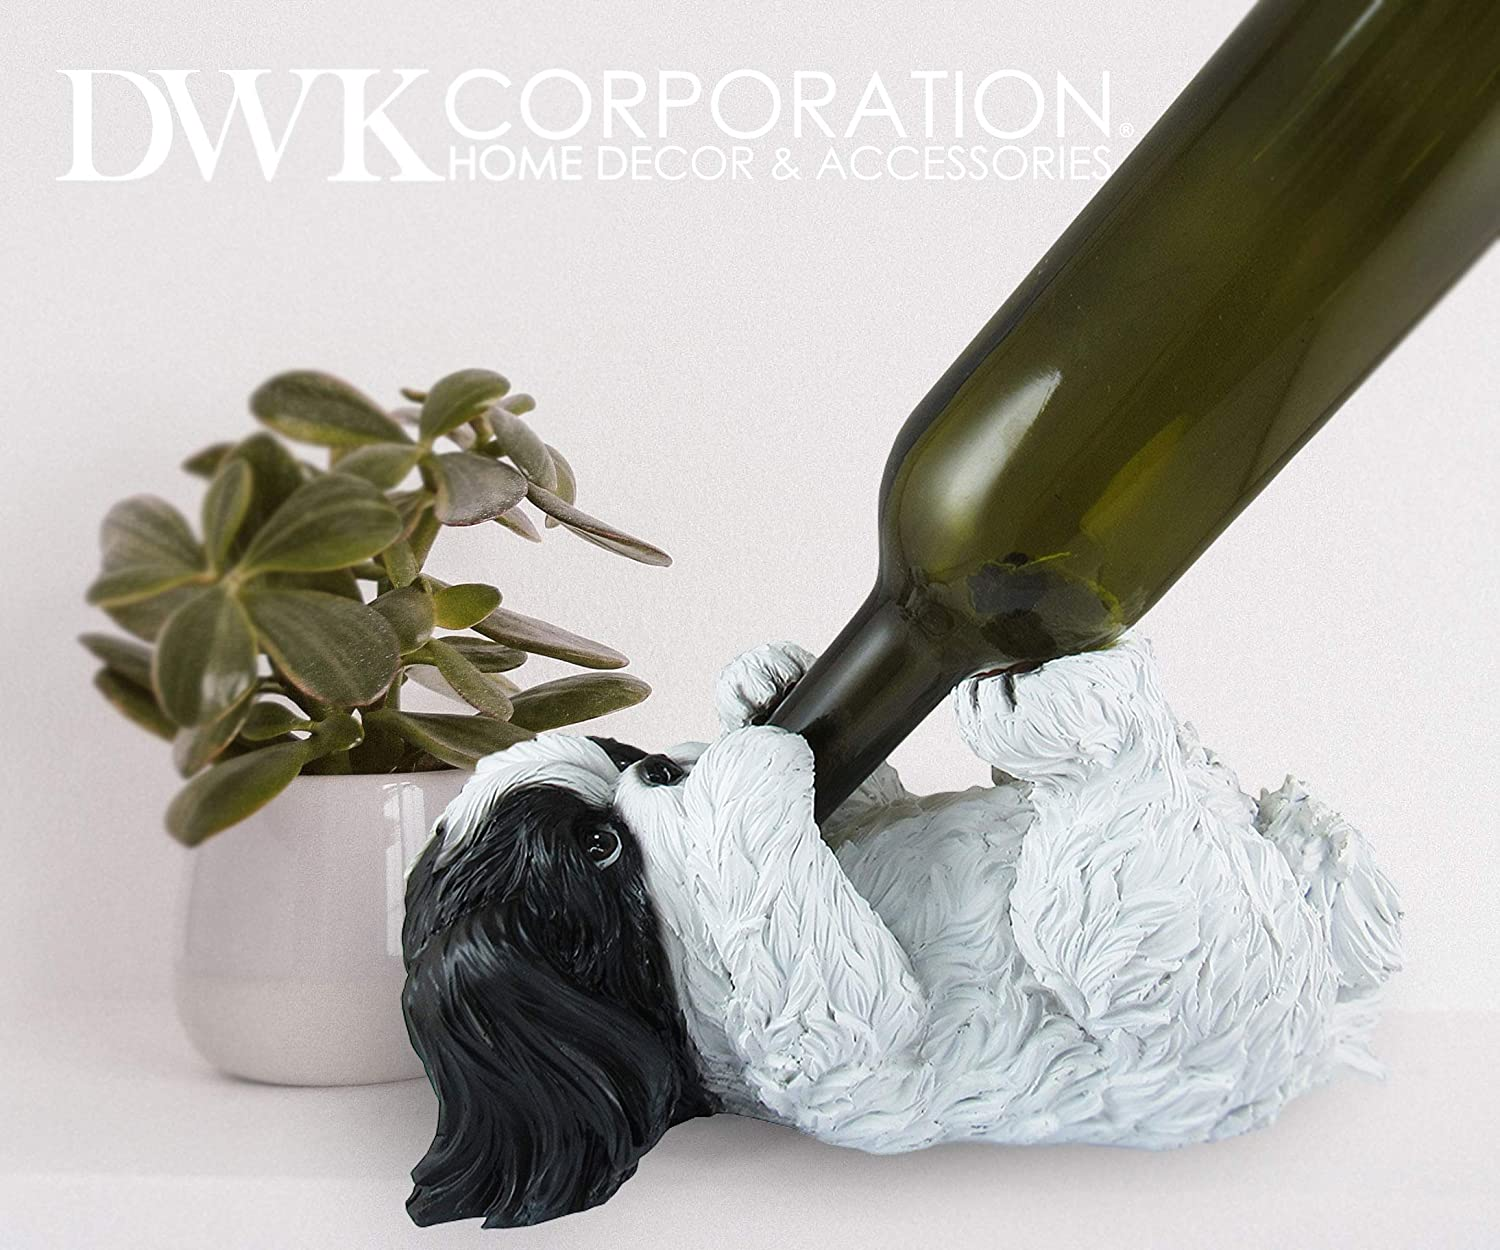 Wine Accessories for a Wine Bar DWK Animal Decorative Table Top Wine Bottle Holder Black Unicorn Great Gifts for Her Kitchen Organization Home Bar Decor